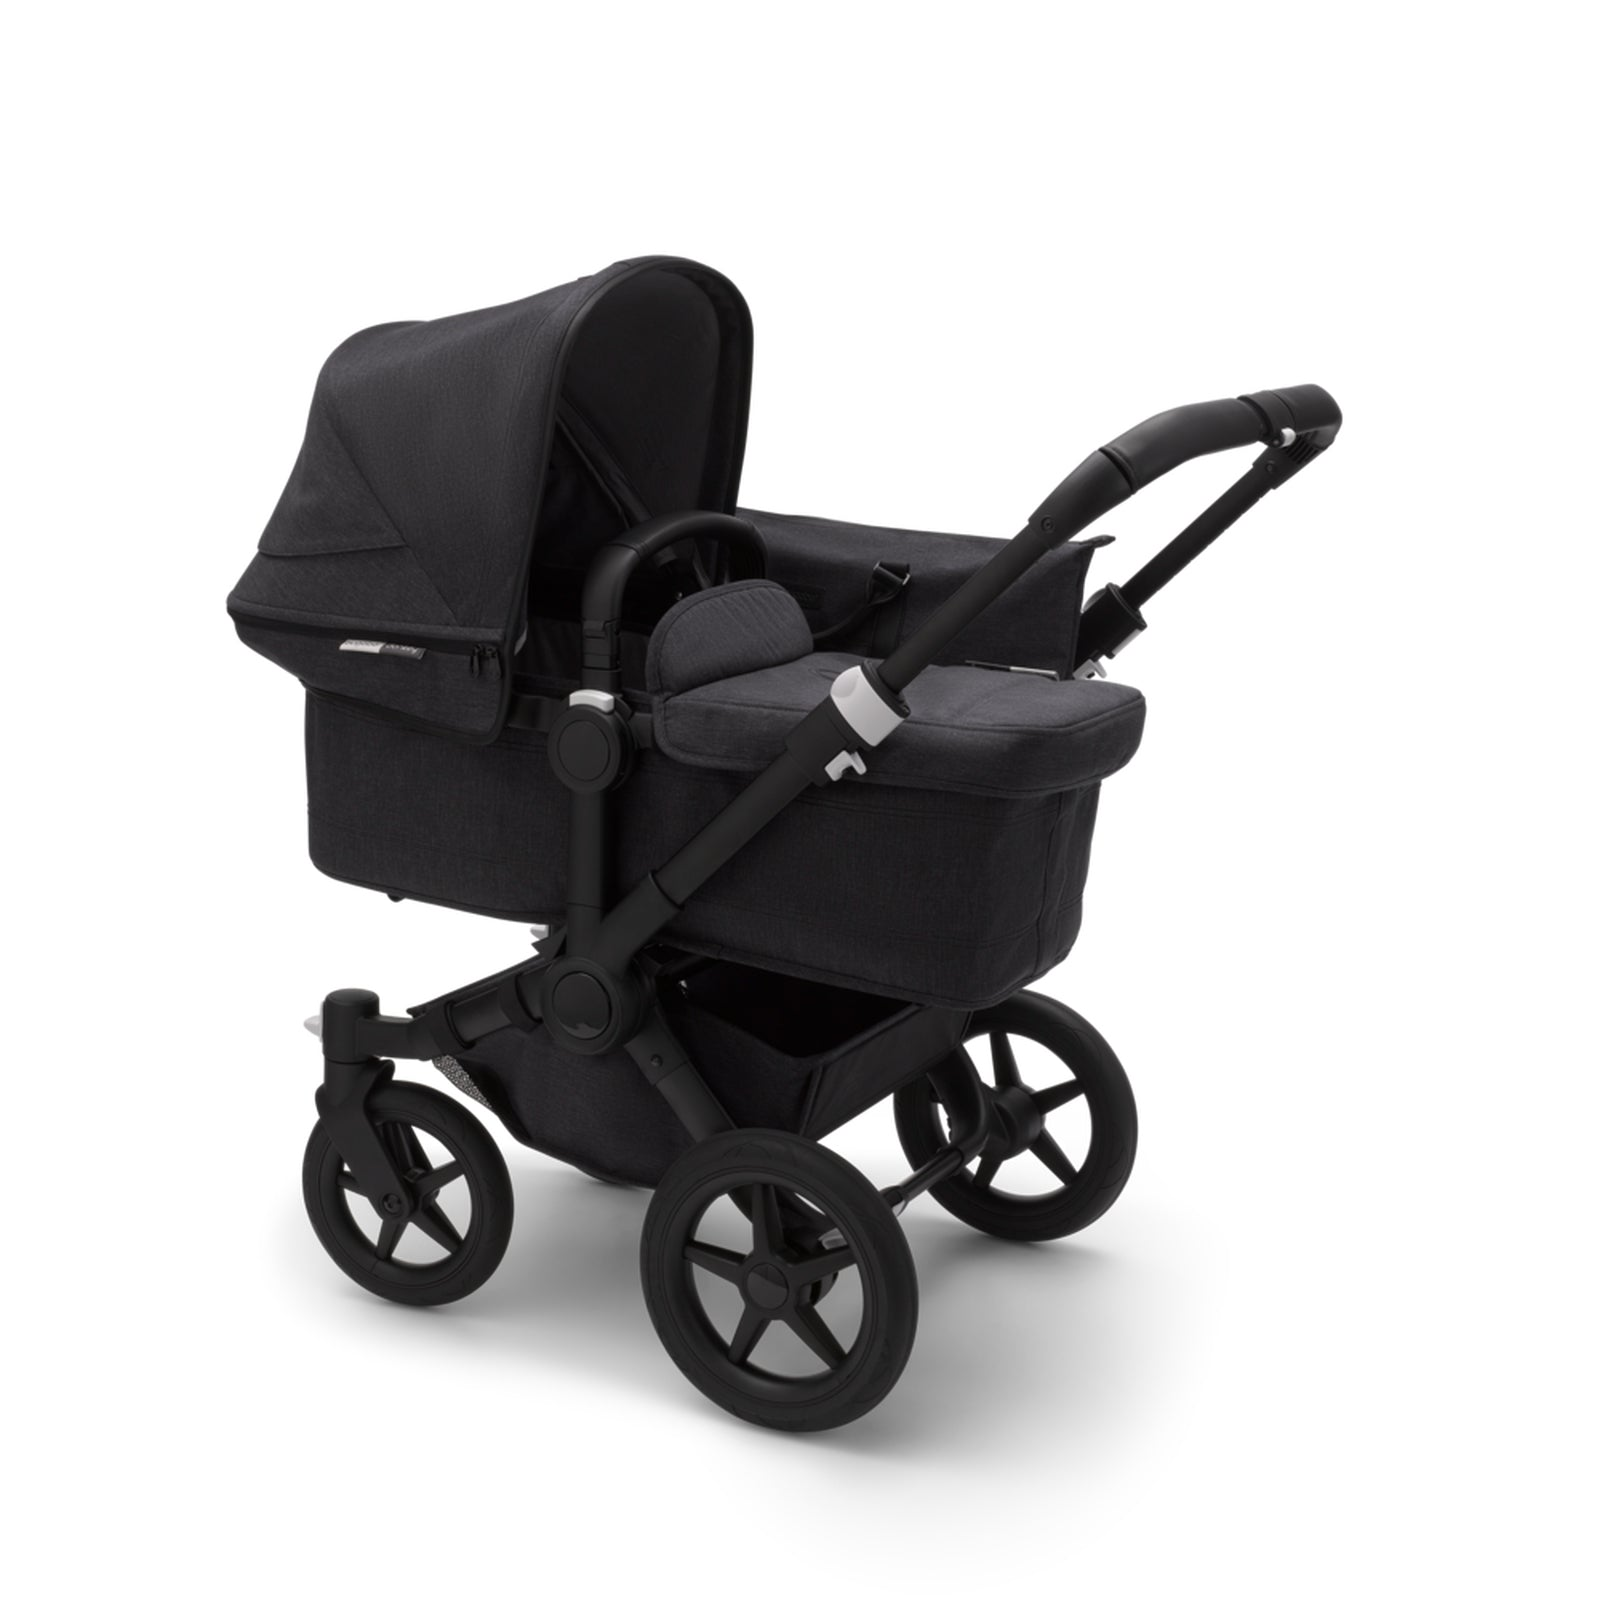 Bugaboo Donkey 3 Mono Seat and Carrycot Pushchair - Mineral Washed Black